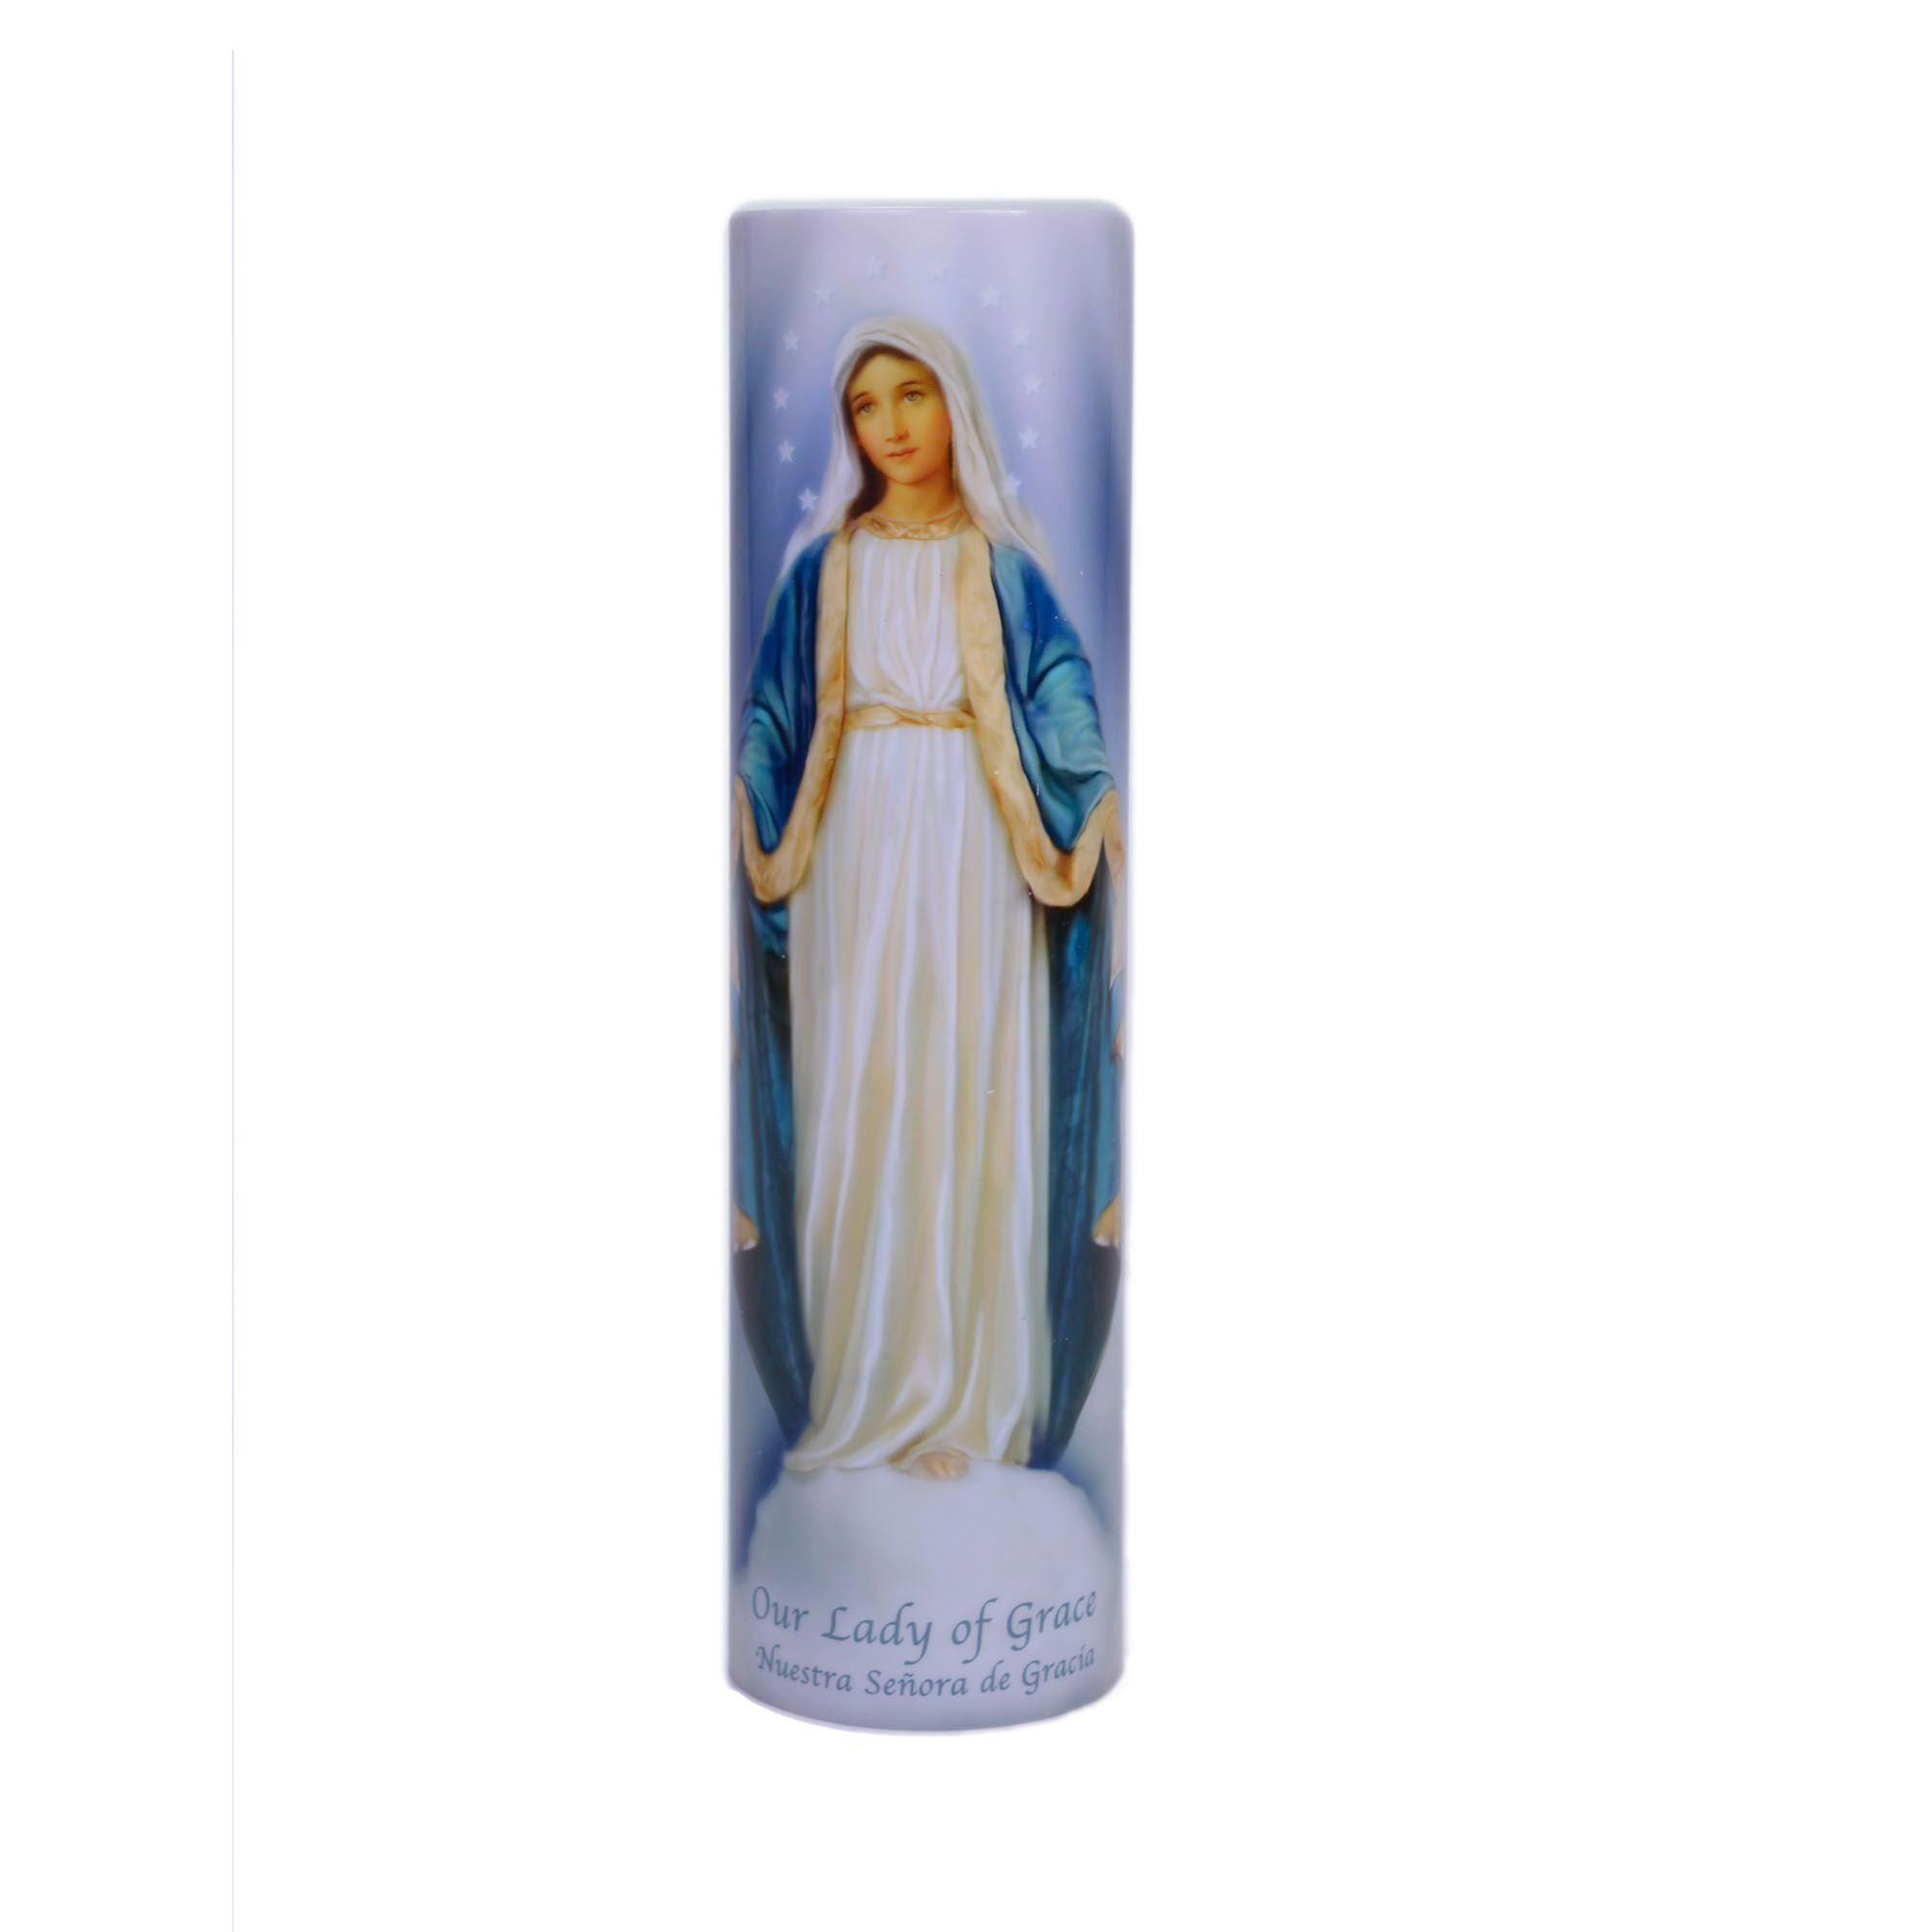 Immaculate Heart of Mary Religious Gift LED Flameless Devotion Prayer Candle 6 Hour Timer